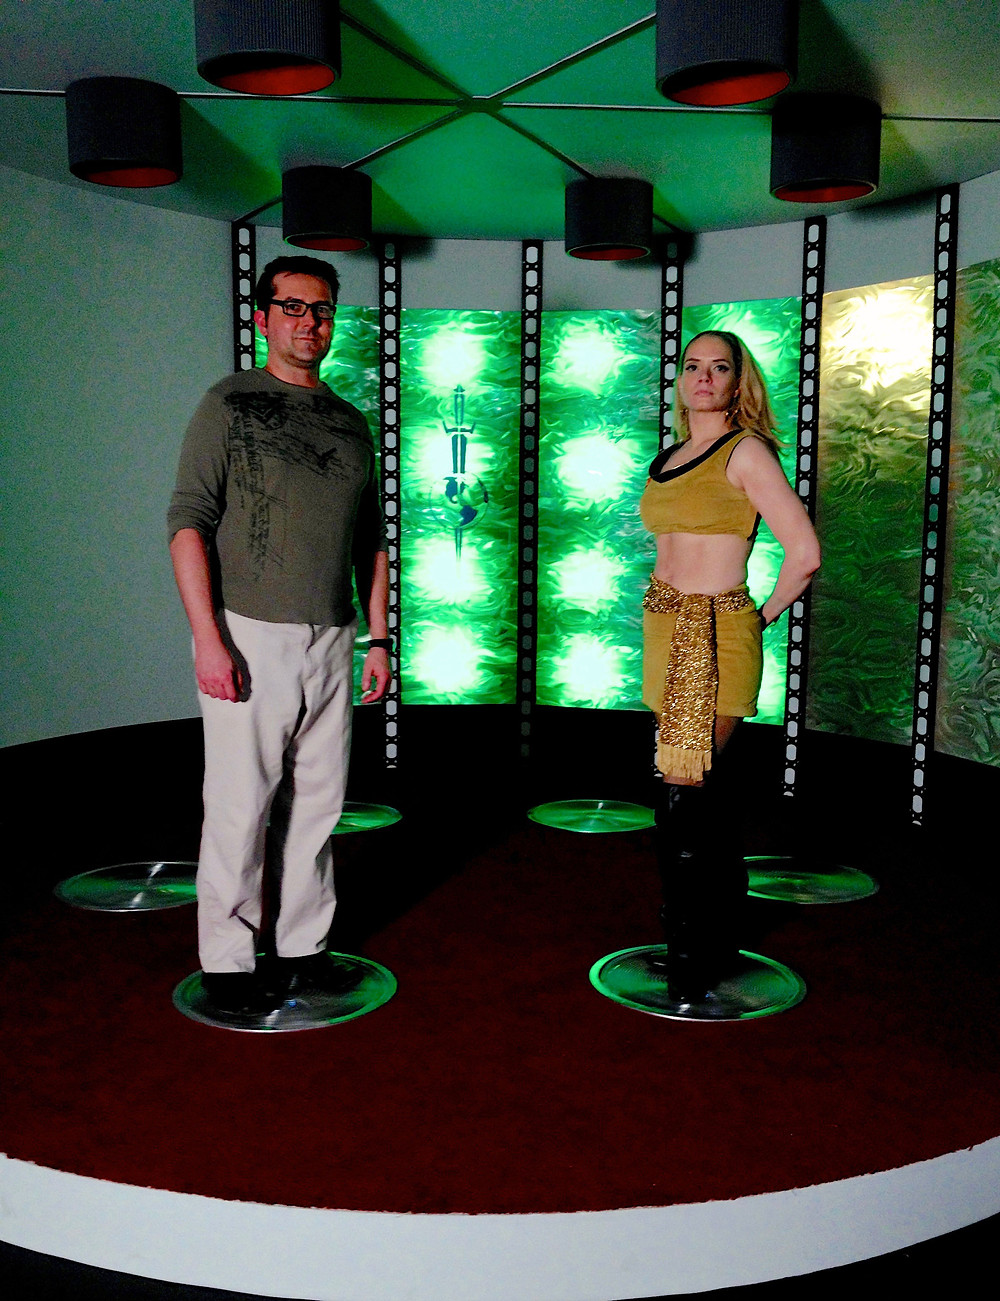 """On the set for Episode 3 of """"Star Trek Continues,"""" called """"Fairest of Them All,"""" with actress Kipleigh Brown."""